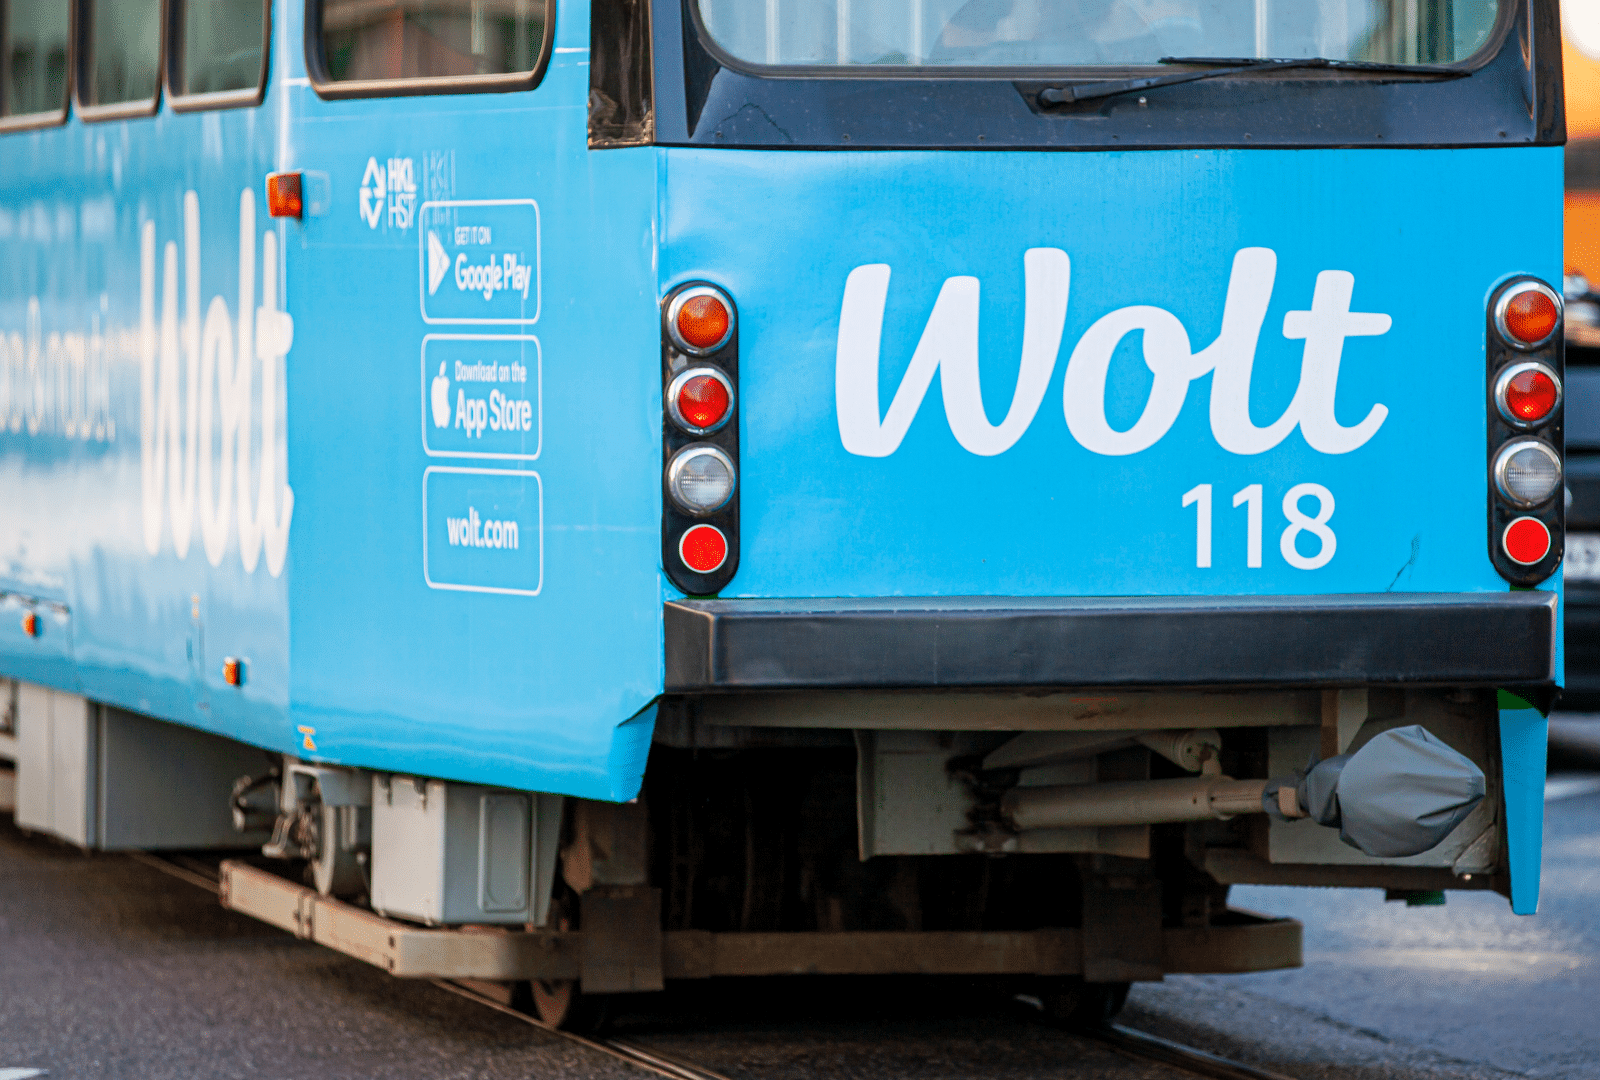 Finnish food startup Wolt raises $530mn in mega private equity raise